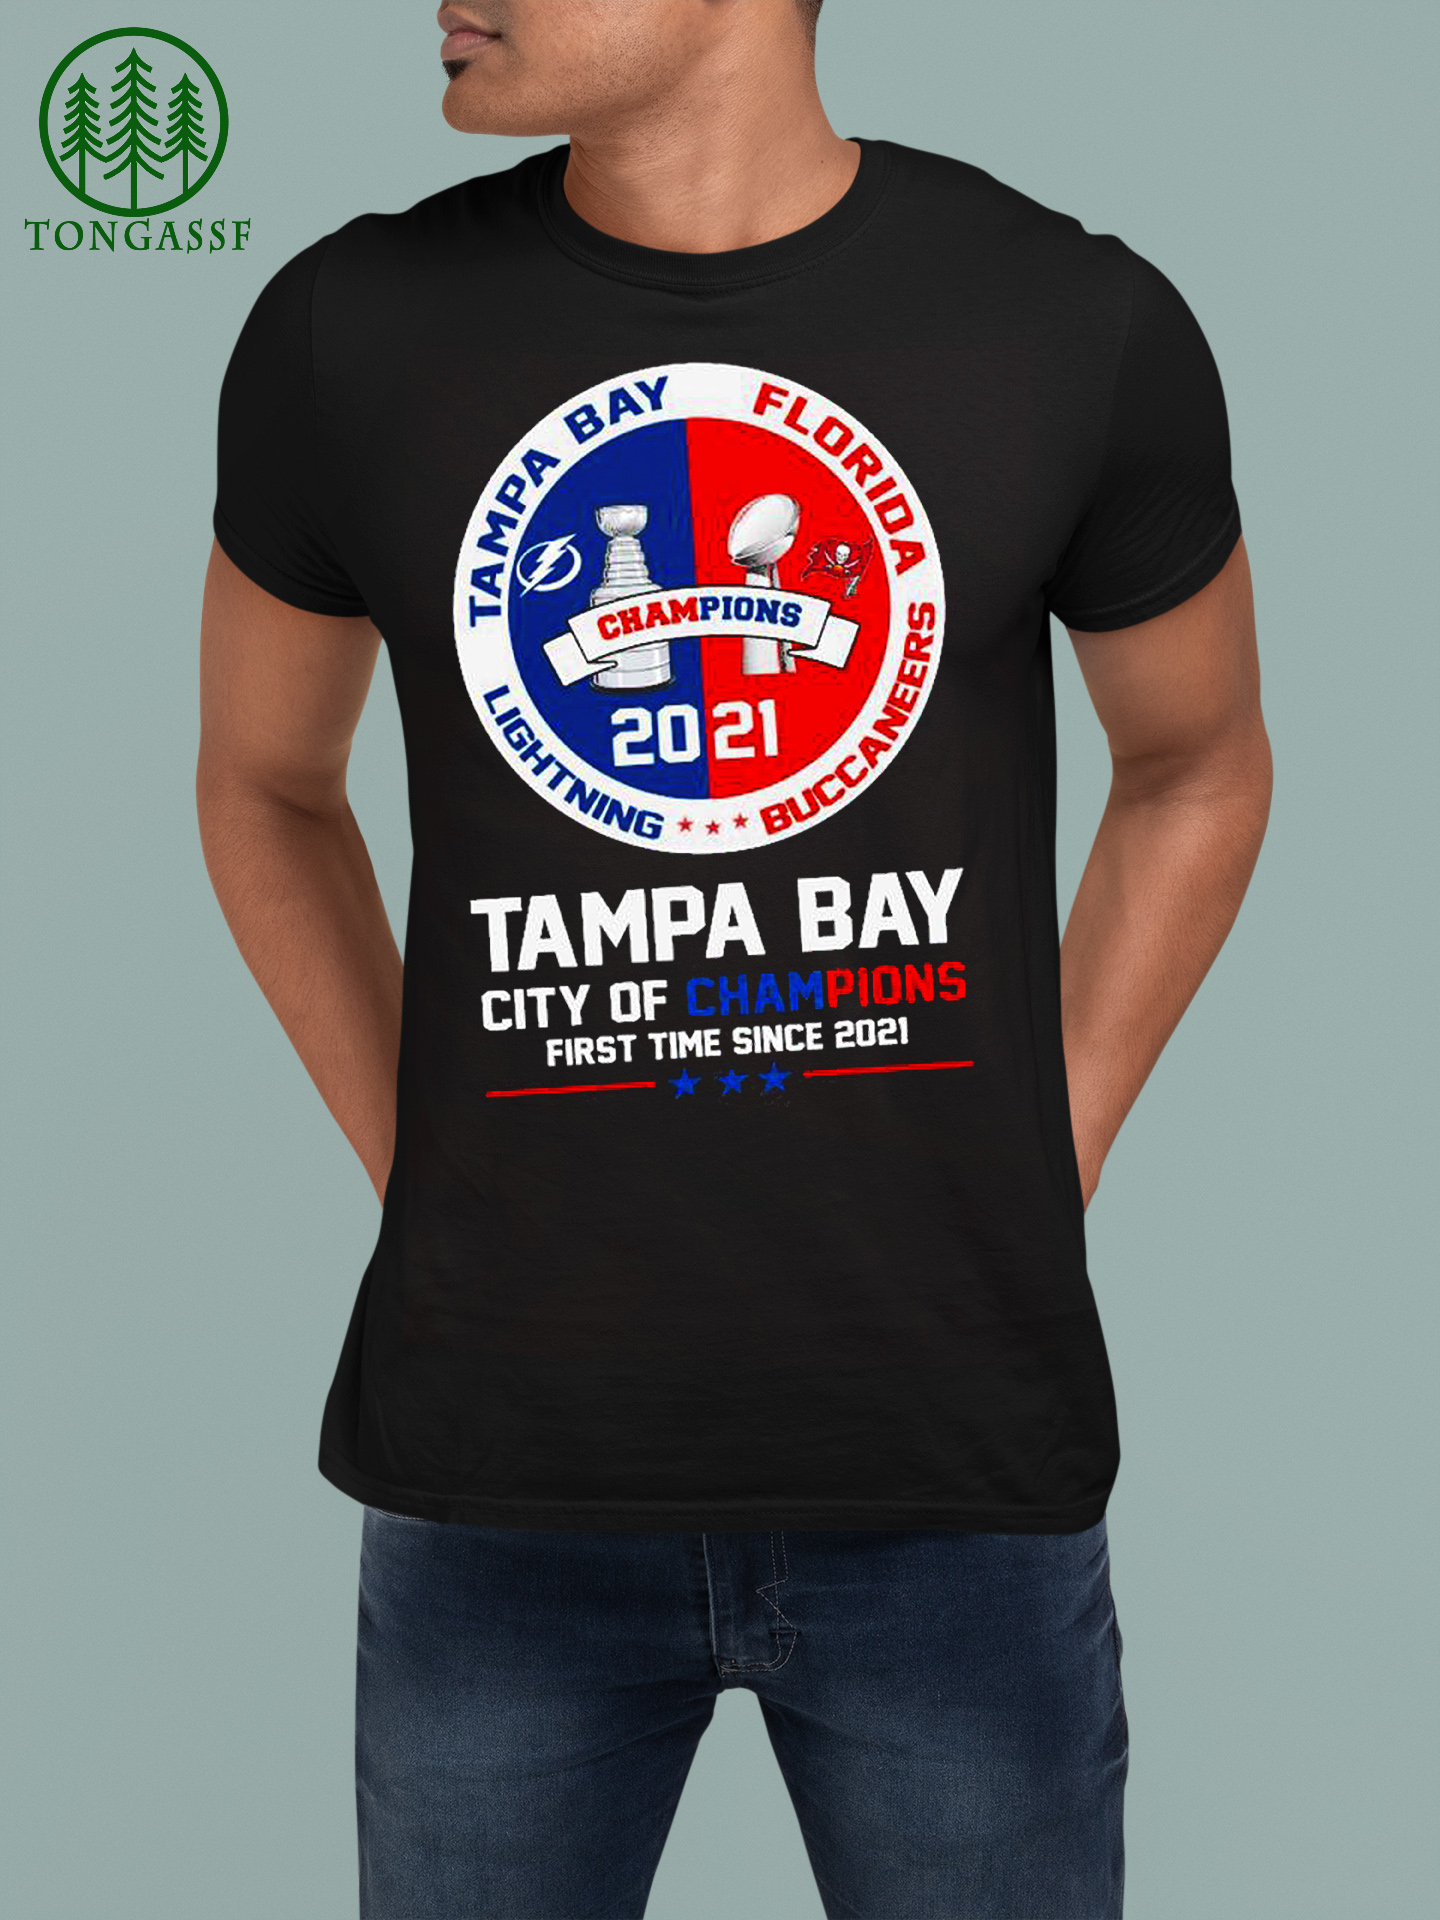 Tampa Bay Florida lighting Buccaneers Tampa Bay City of champions first time since 2021 shirt (2)